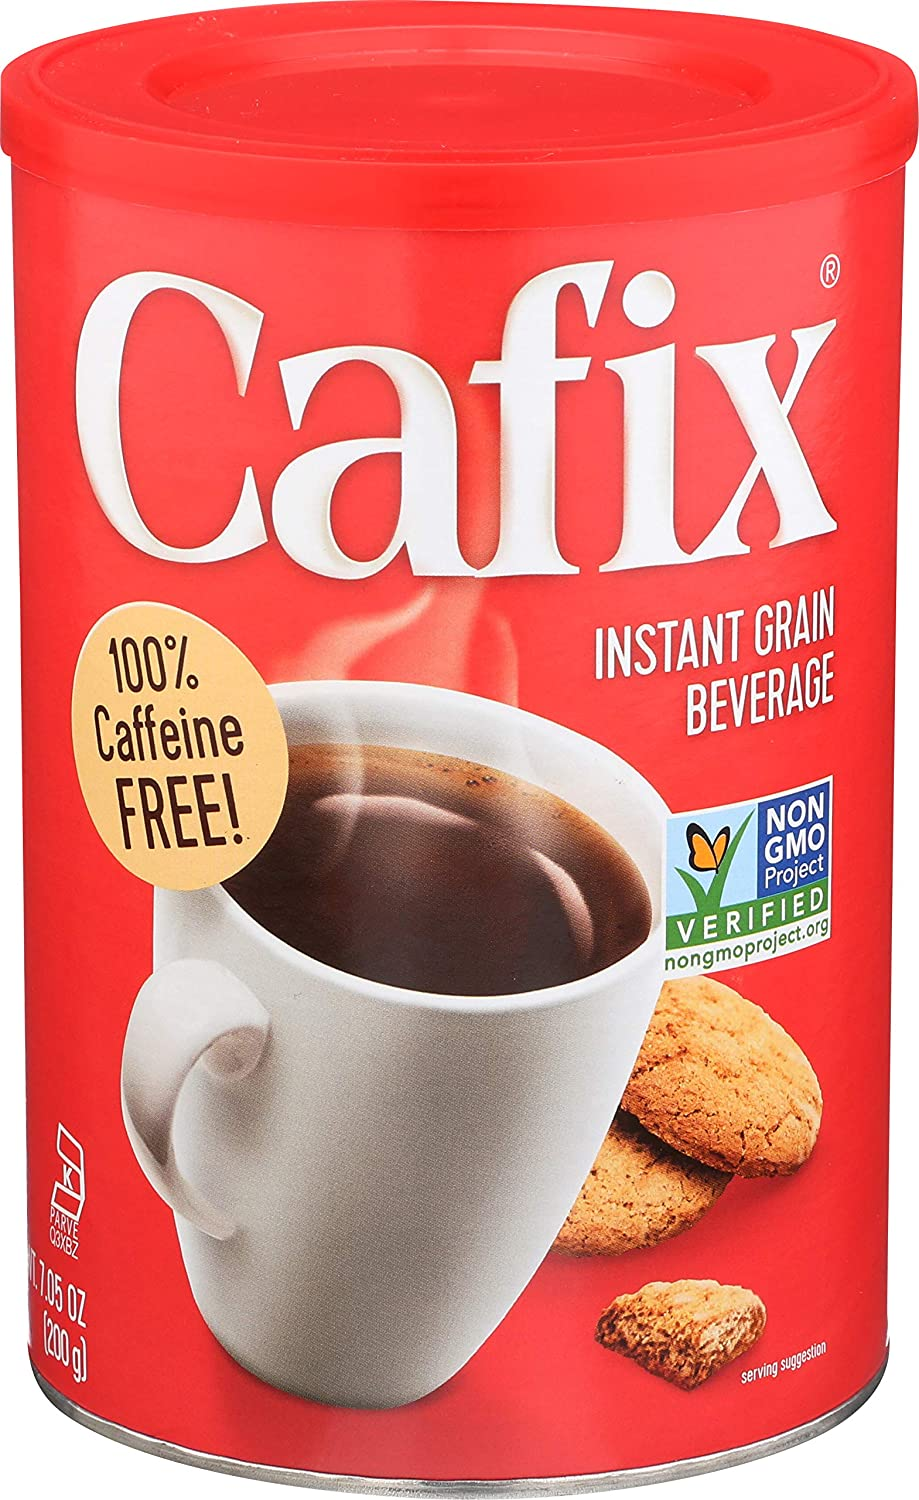 Cafix Caffeine-Free All-Natural Instant Coffee Substitute, 7.05-oz. Packages (Pack of 6)